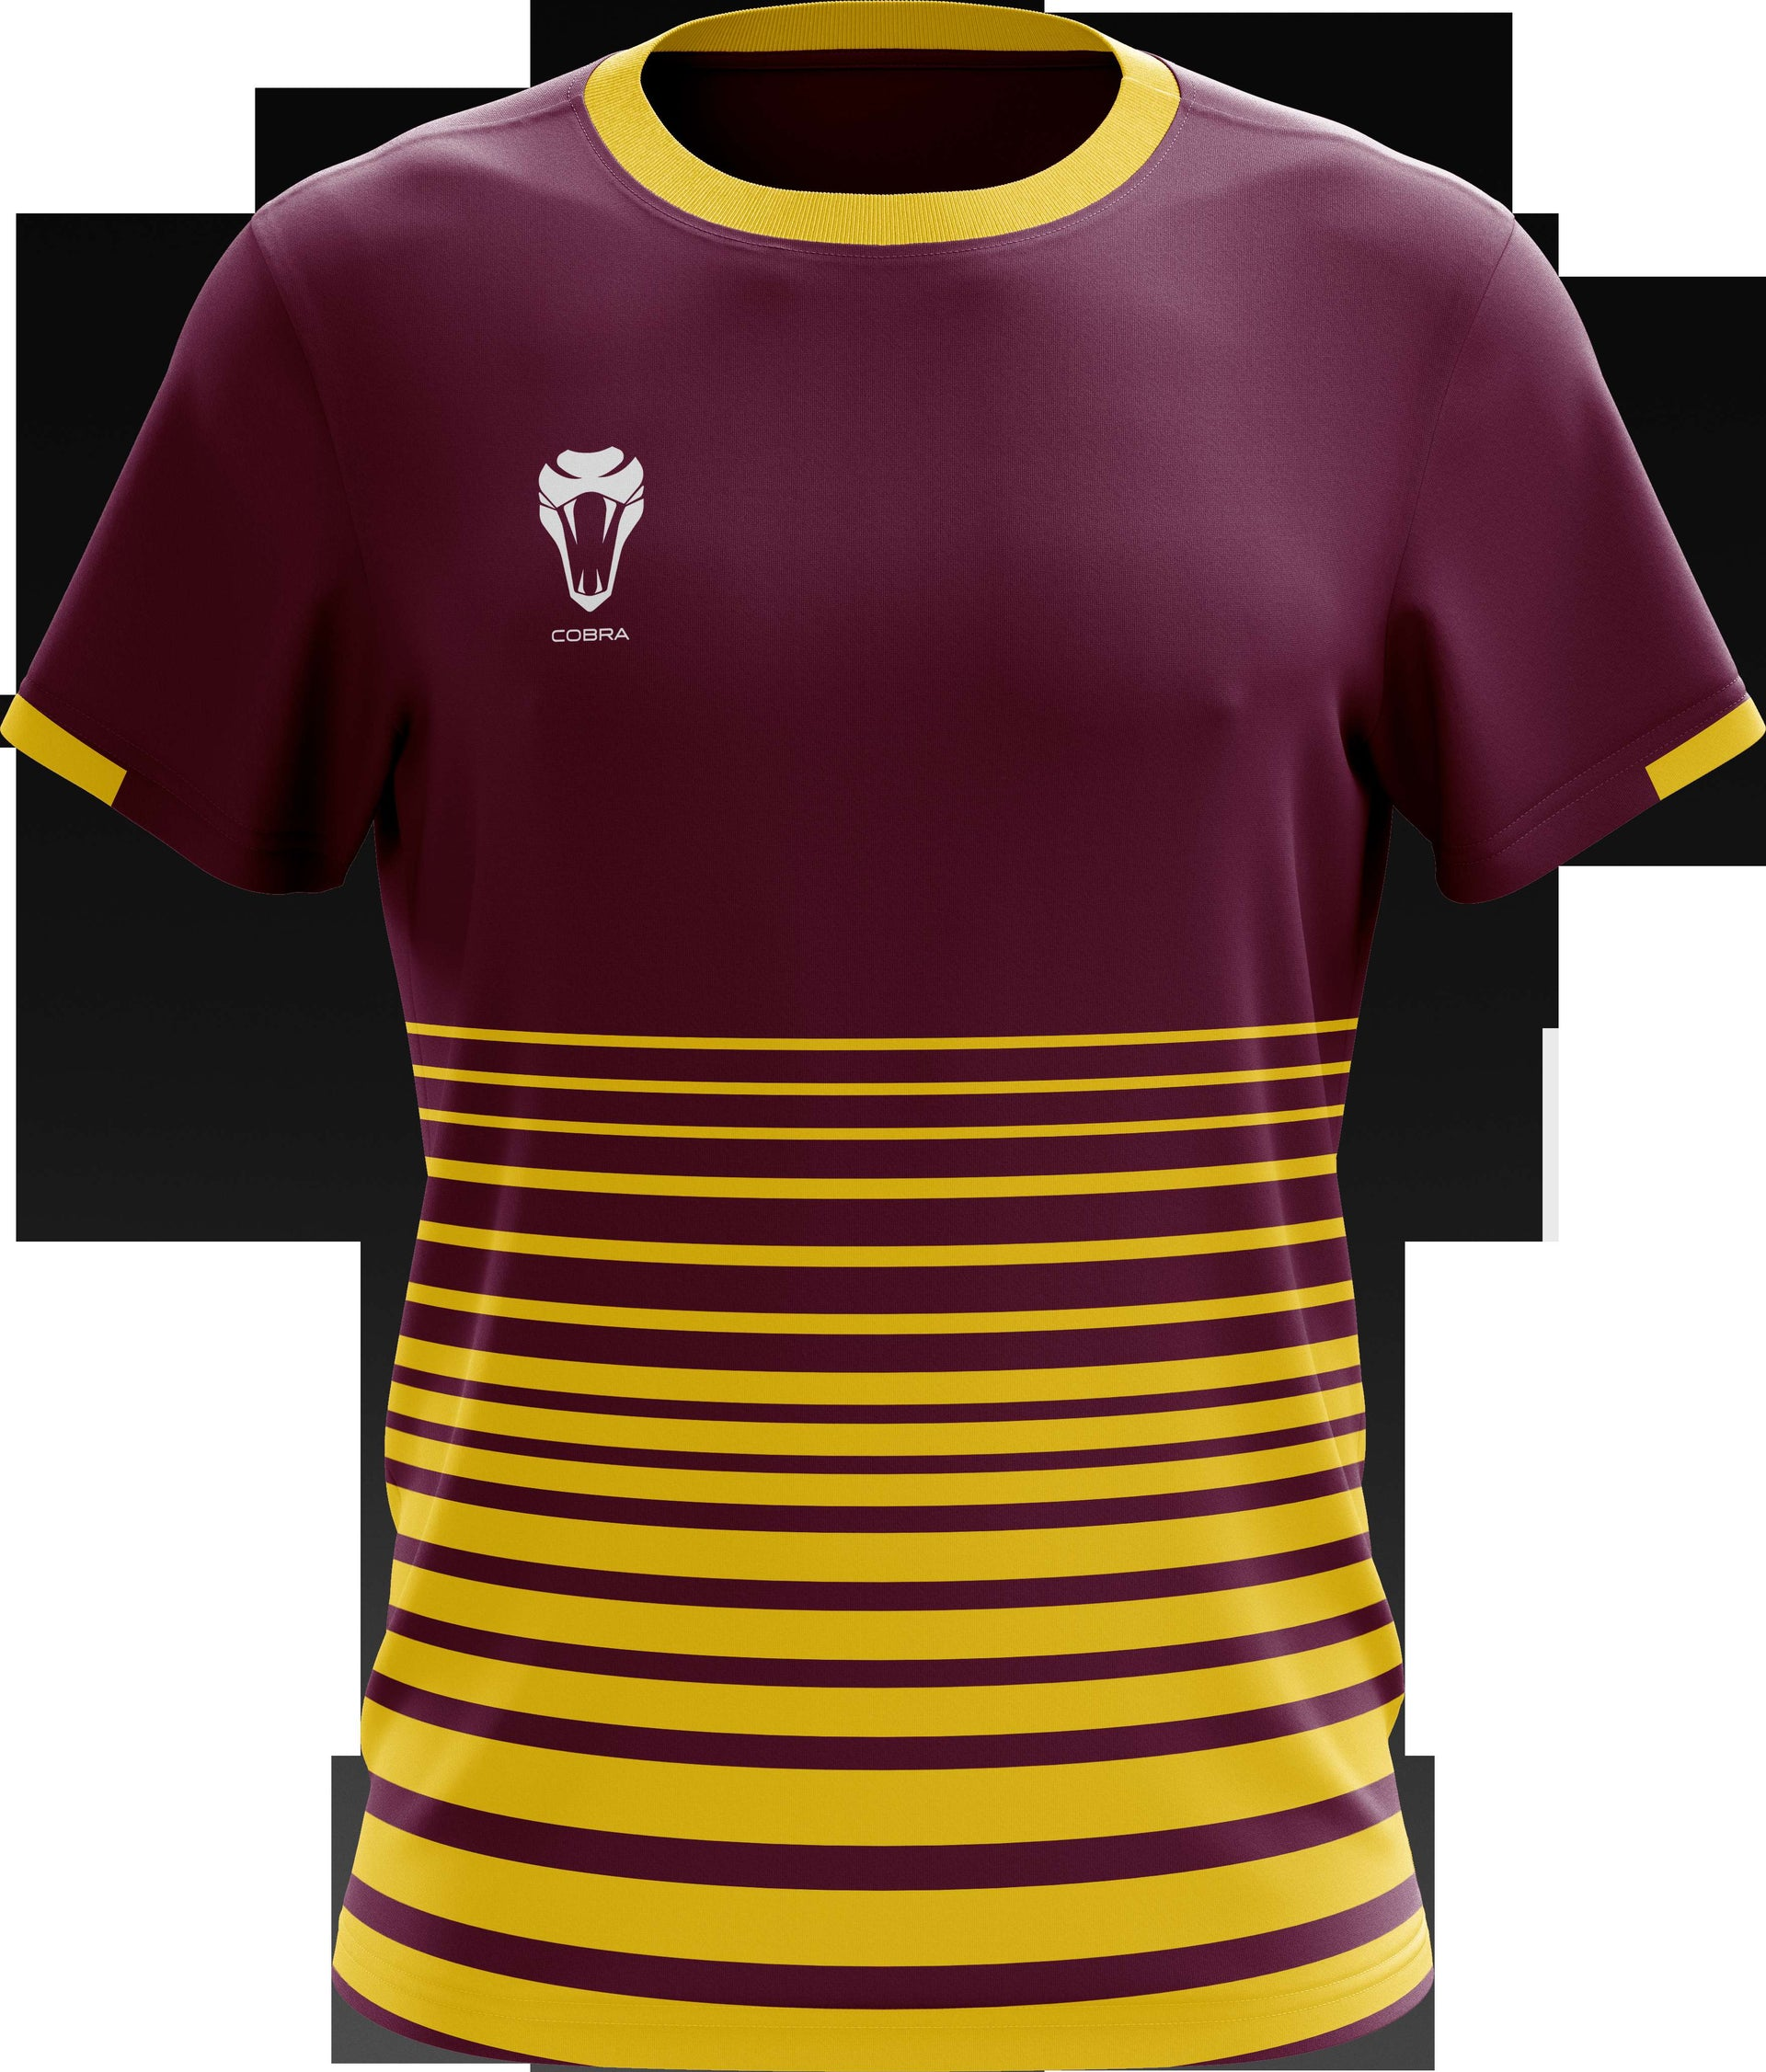 Teamwear - T20 KIT (TOP & BOTTOM)